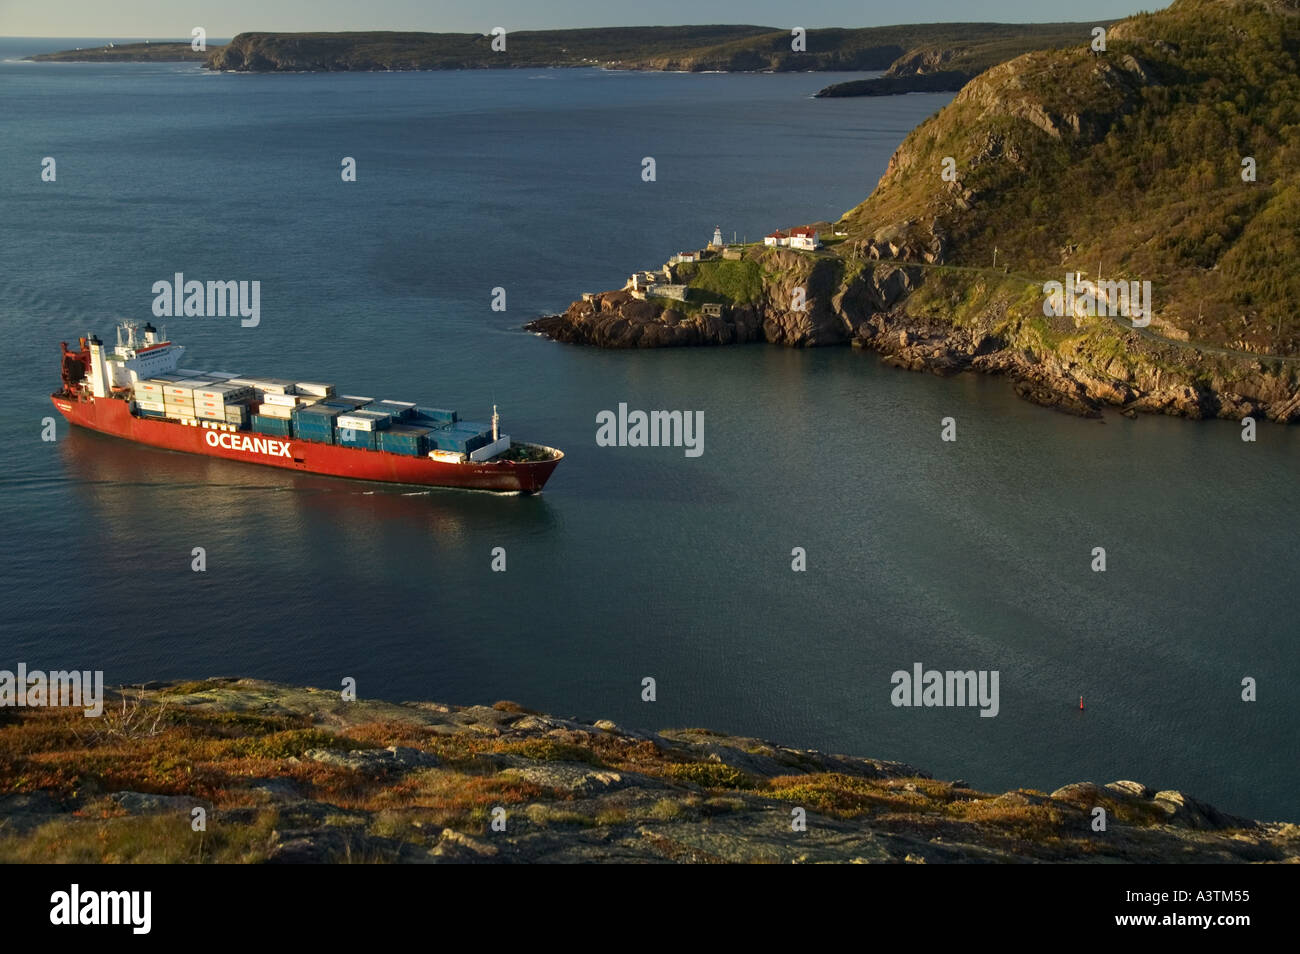 Canada Newfoundland St John s container ship entering harbour narrows Fort Amherst Lighthouse Stock Photo